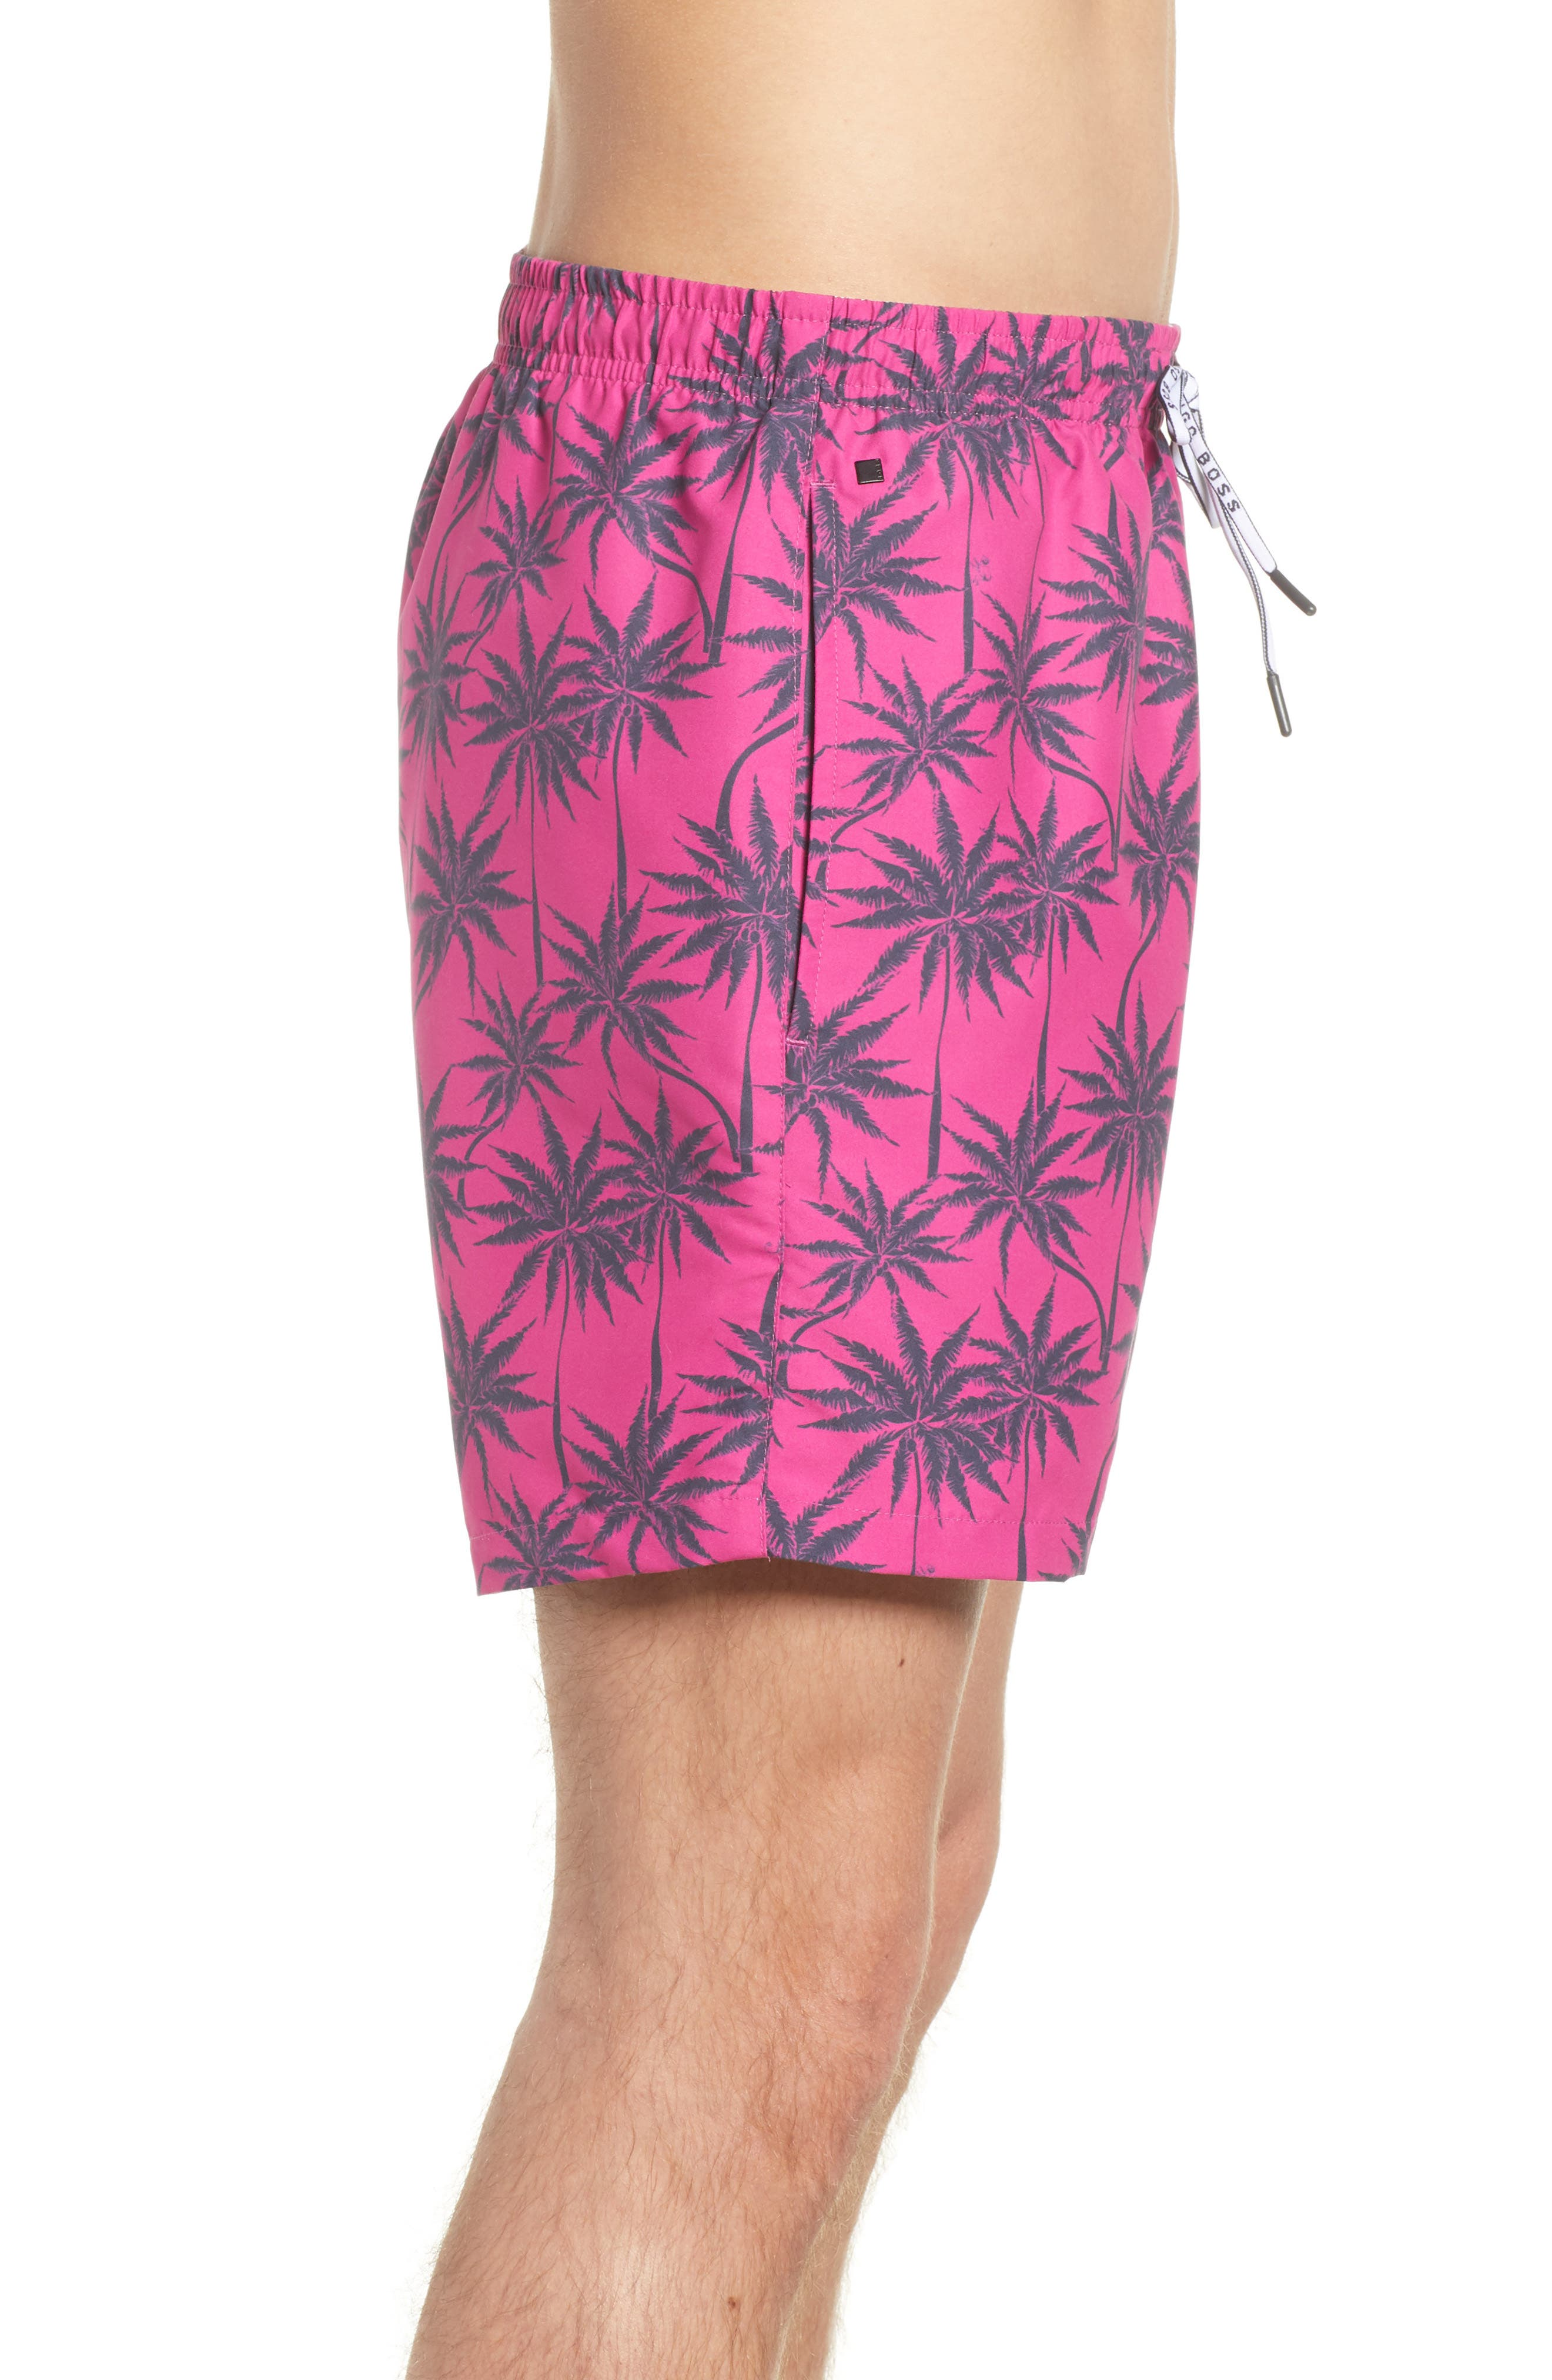 Piranha Palm Tree Swim Trunks,                             Alternate thumbnail 4, color,                             693